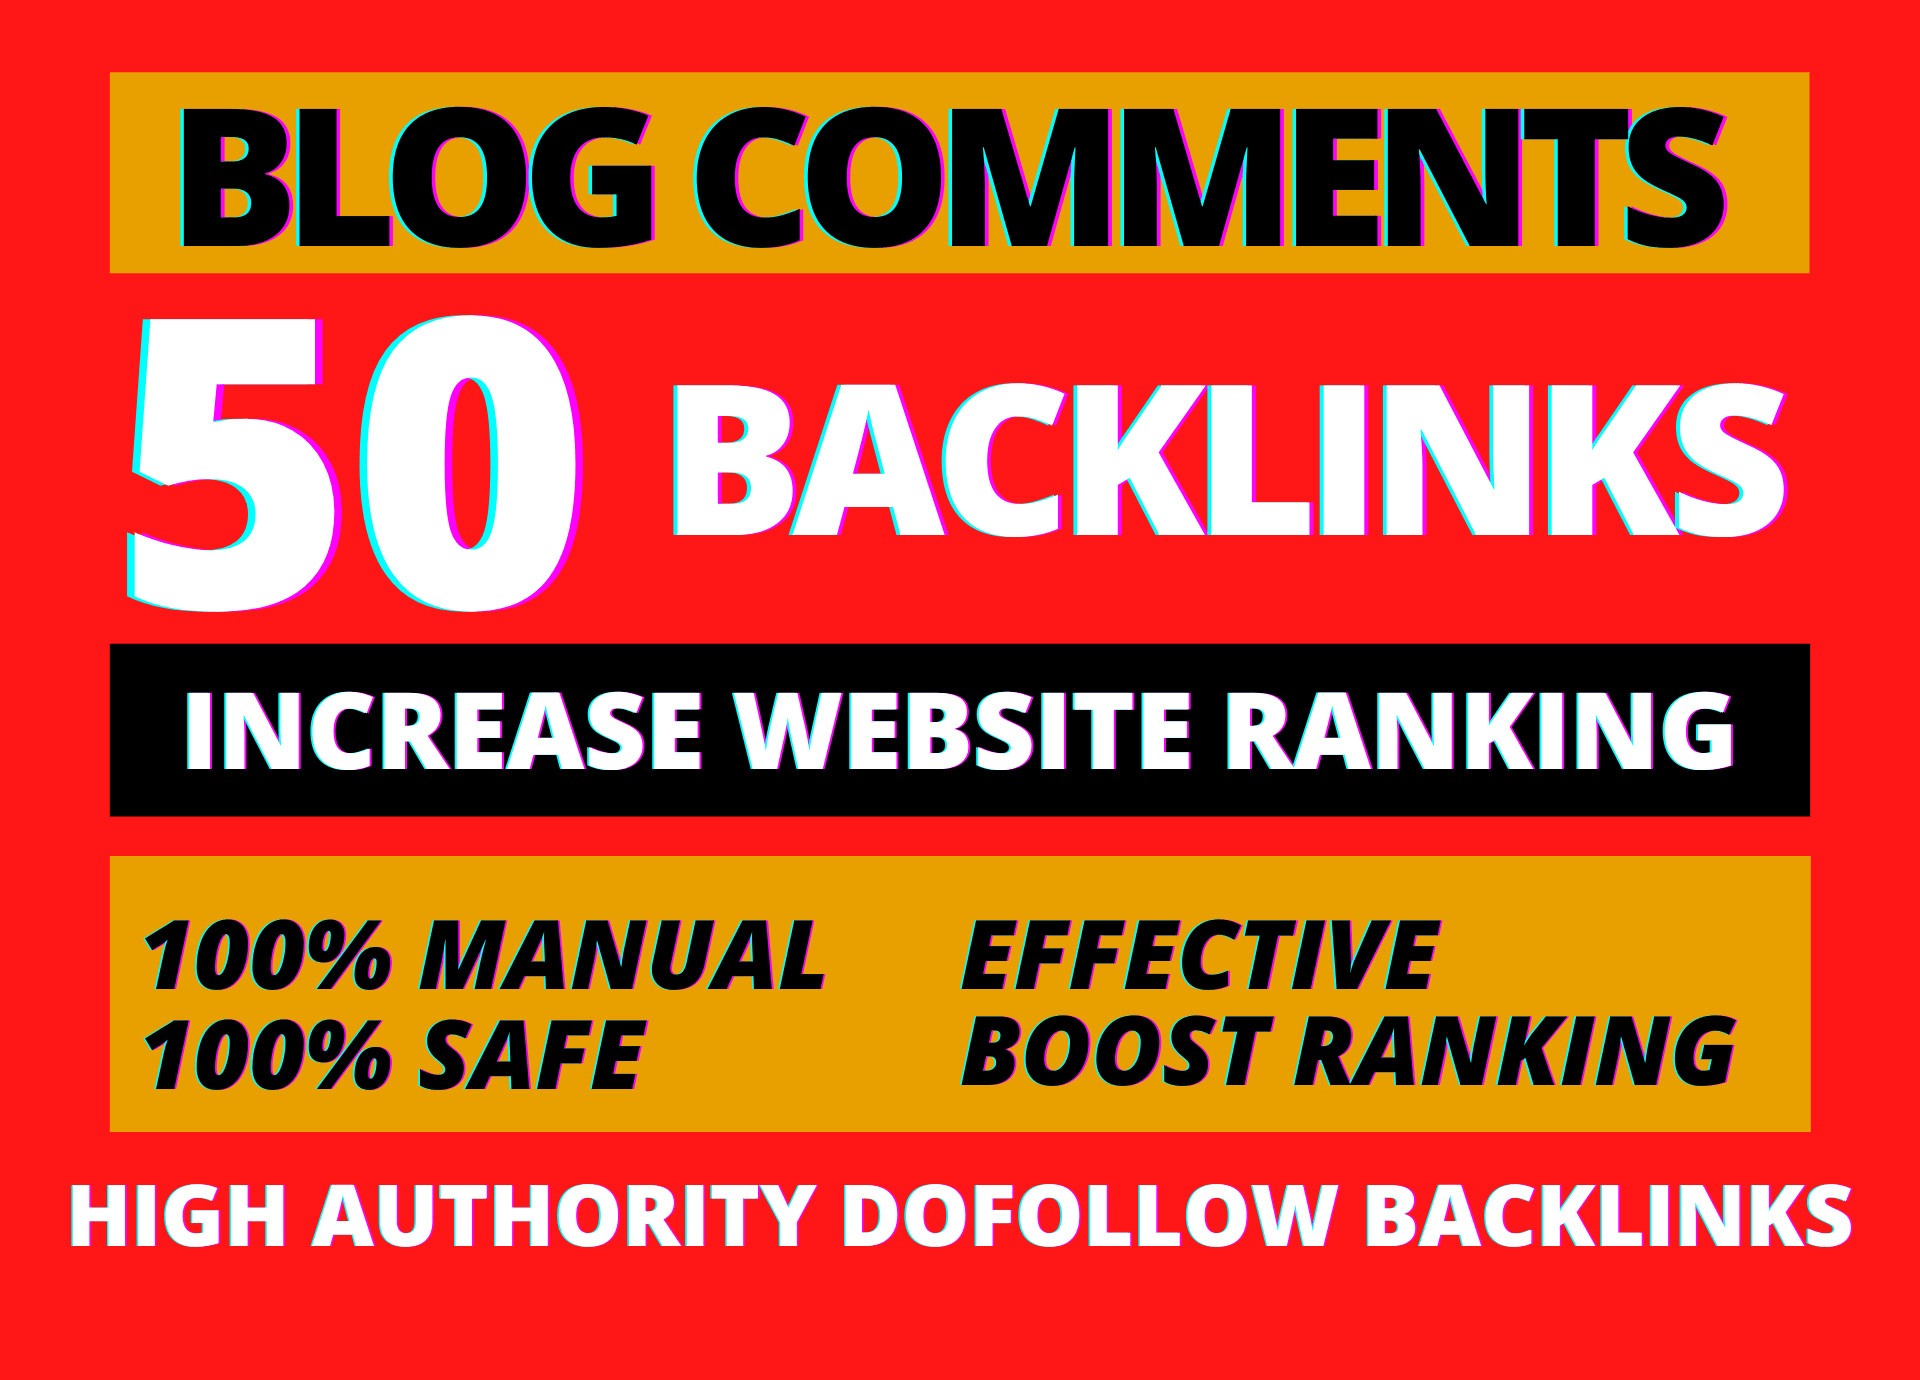 I will build 50 high domain authority Dofollow SEO blog comments